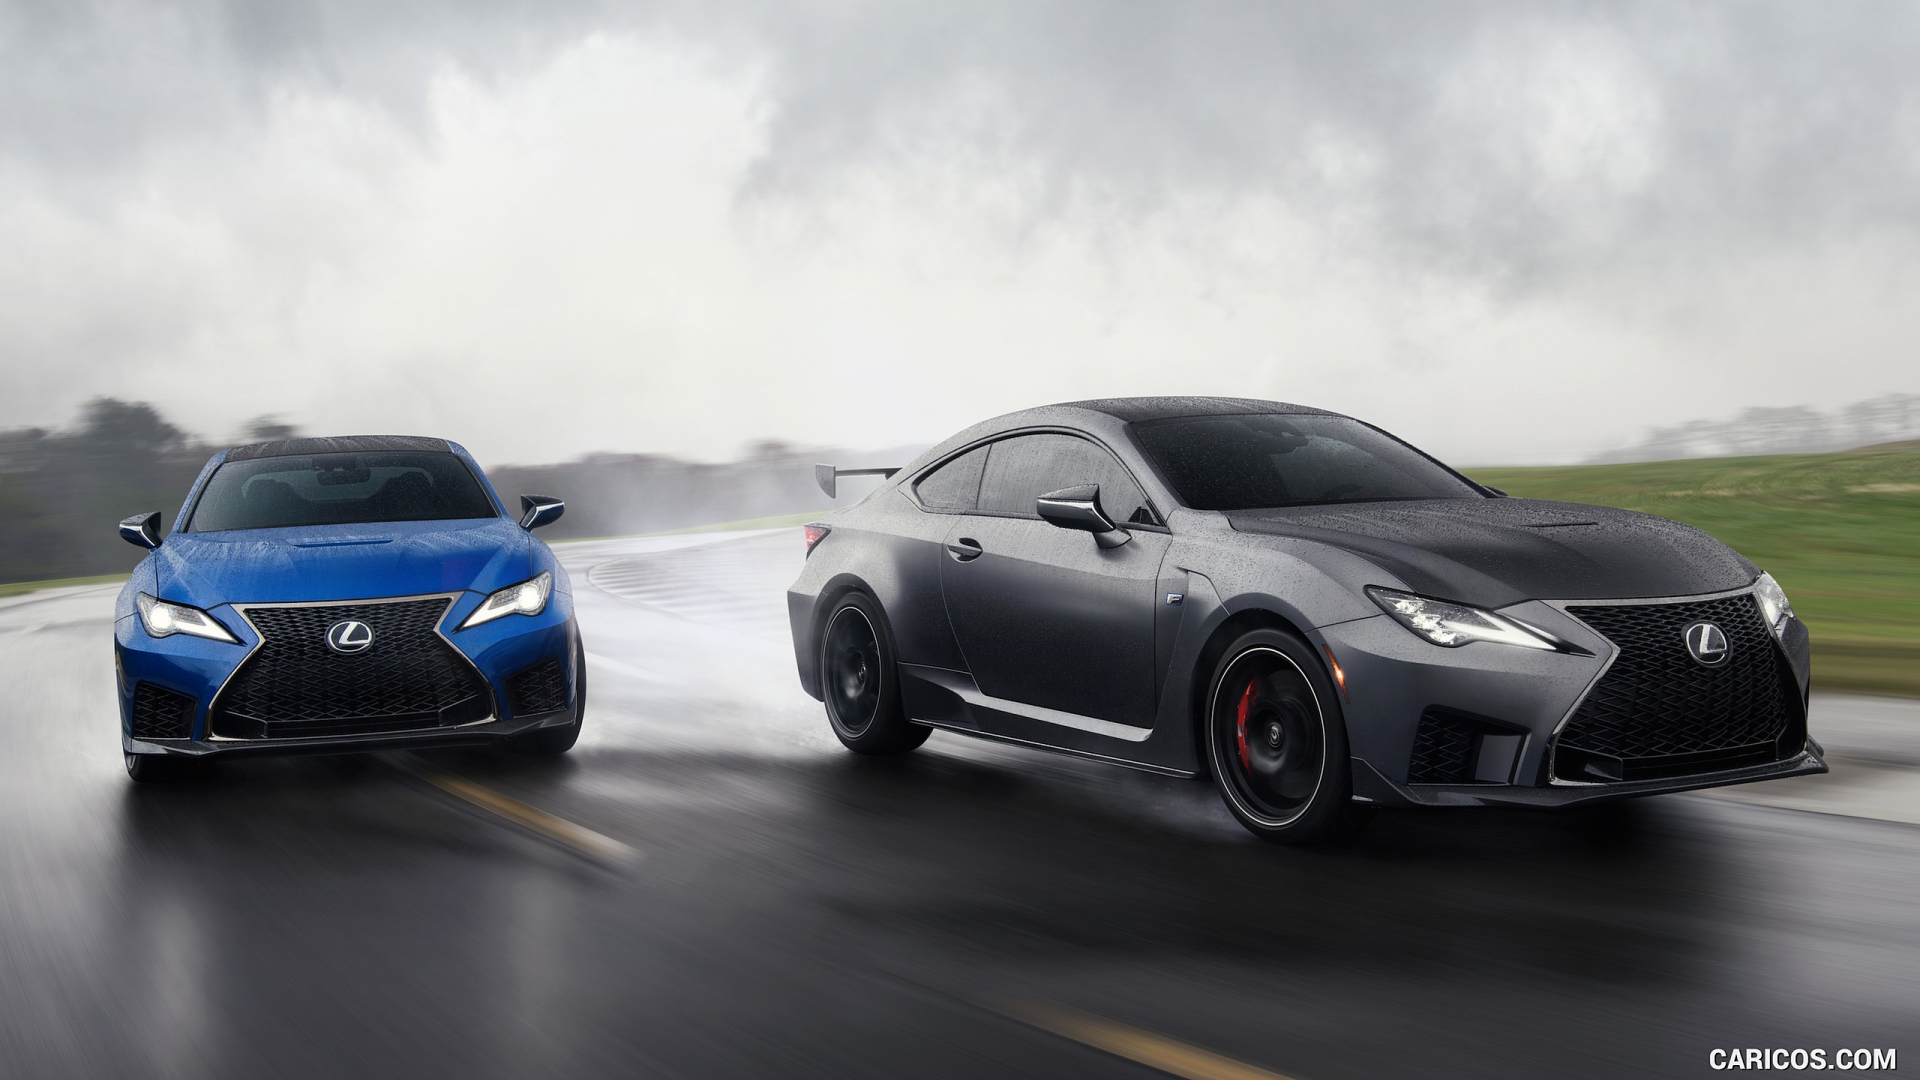 Free Download 2020 Lexus Rc F And Rc F Track Edition Hd Wallpaper 31 2560x1440 For Your Desktop Mobile Tablet Explore 32 Lexus Rc F Wallpapers Lexus Rc F